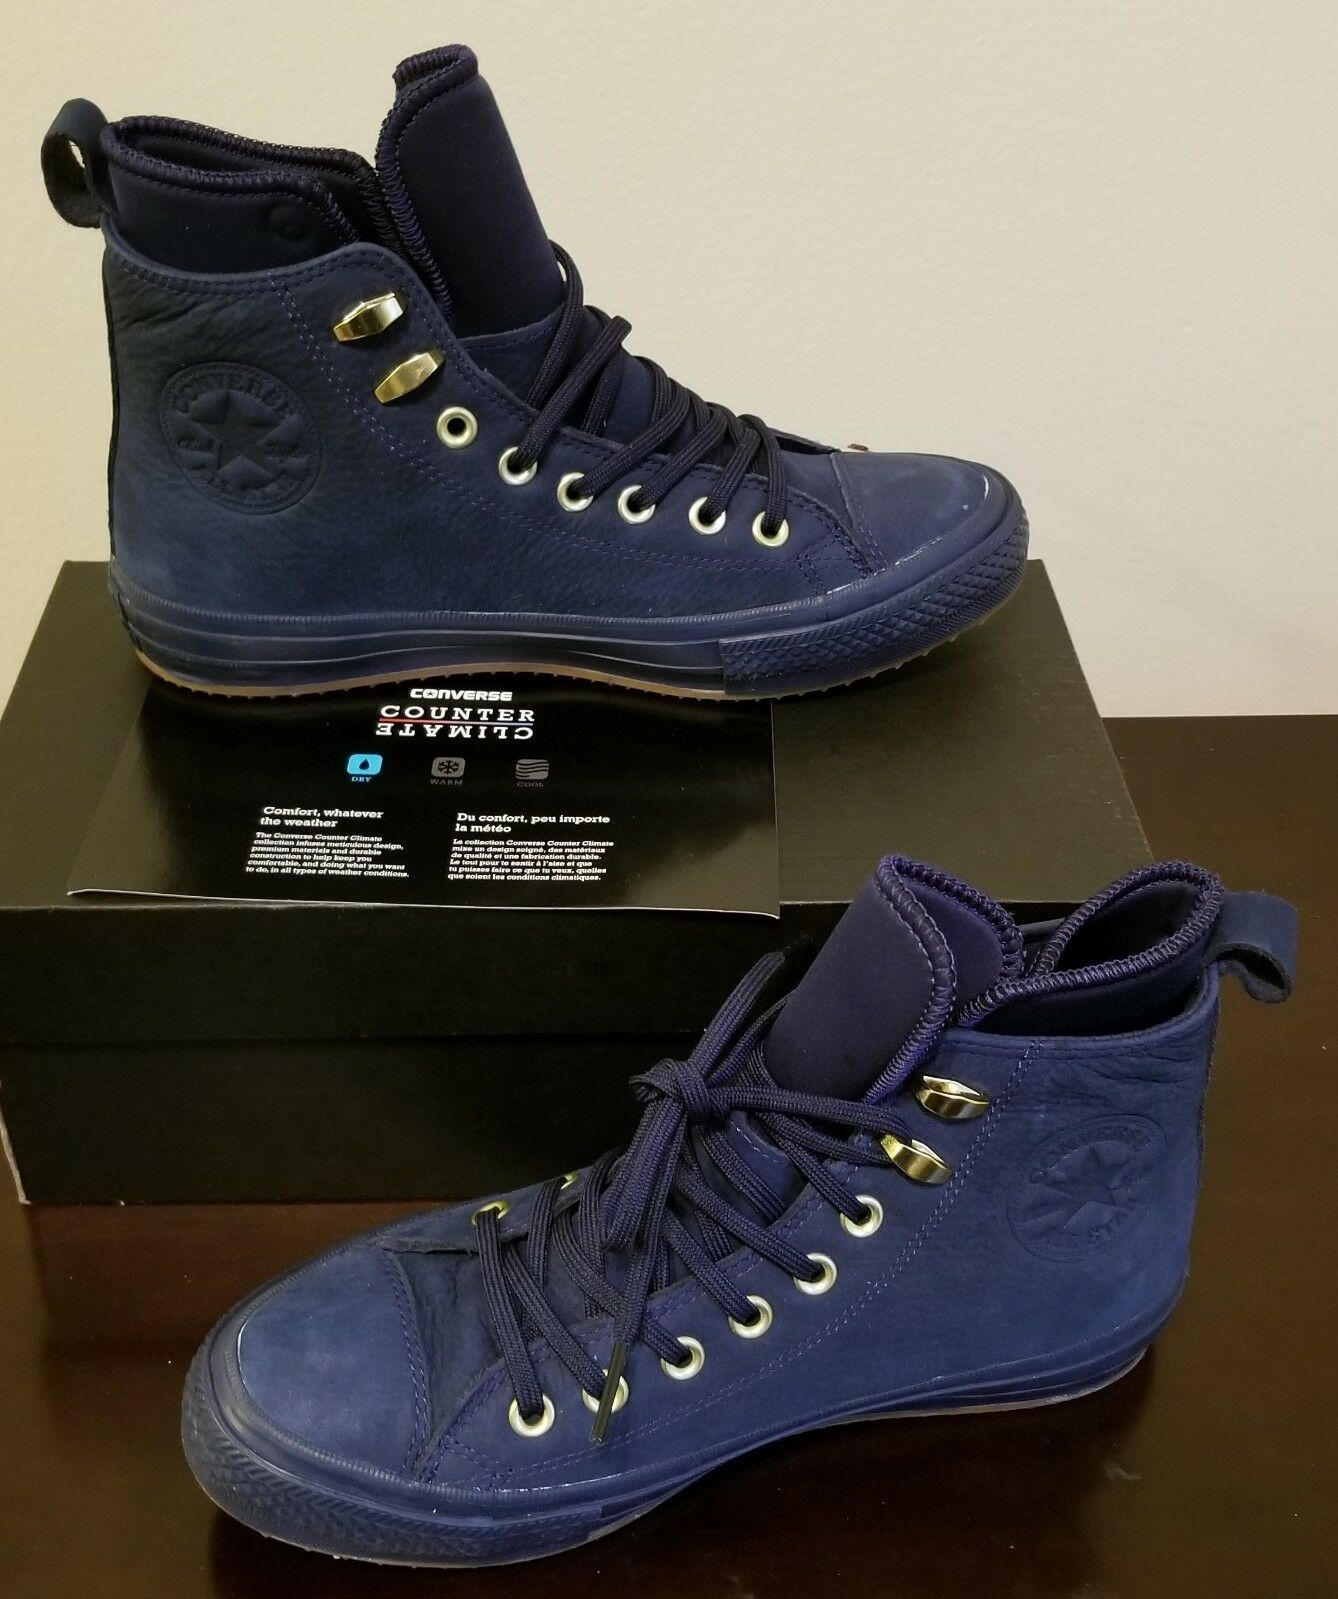 NEW CONVERSE CHUCK TAYLOR ALL STAR II BOOT WATERPROOF MESH BACKED LEATHER BOOT II US 6 c1fe7c